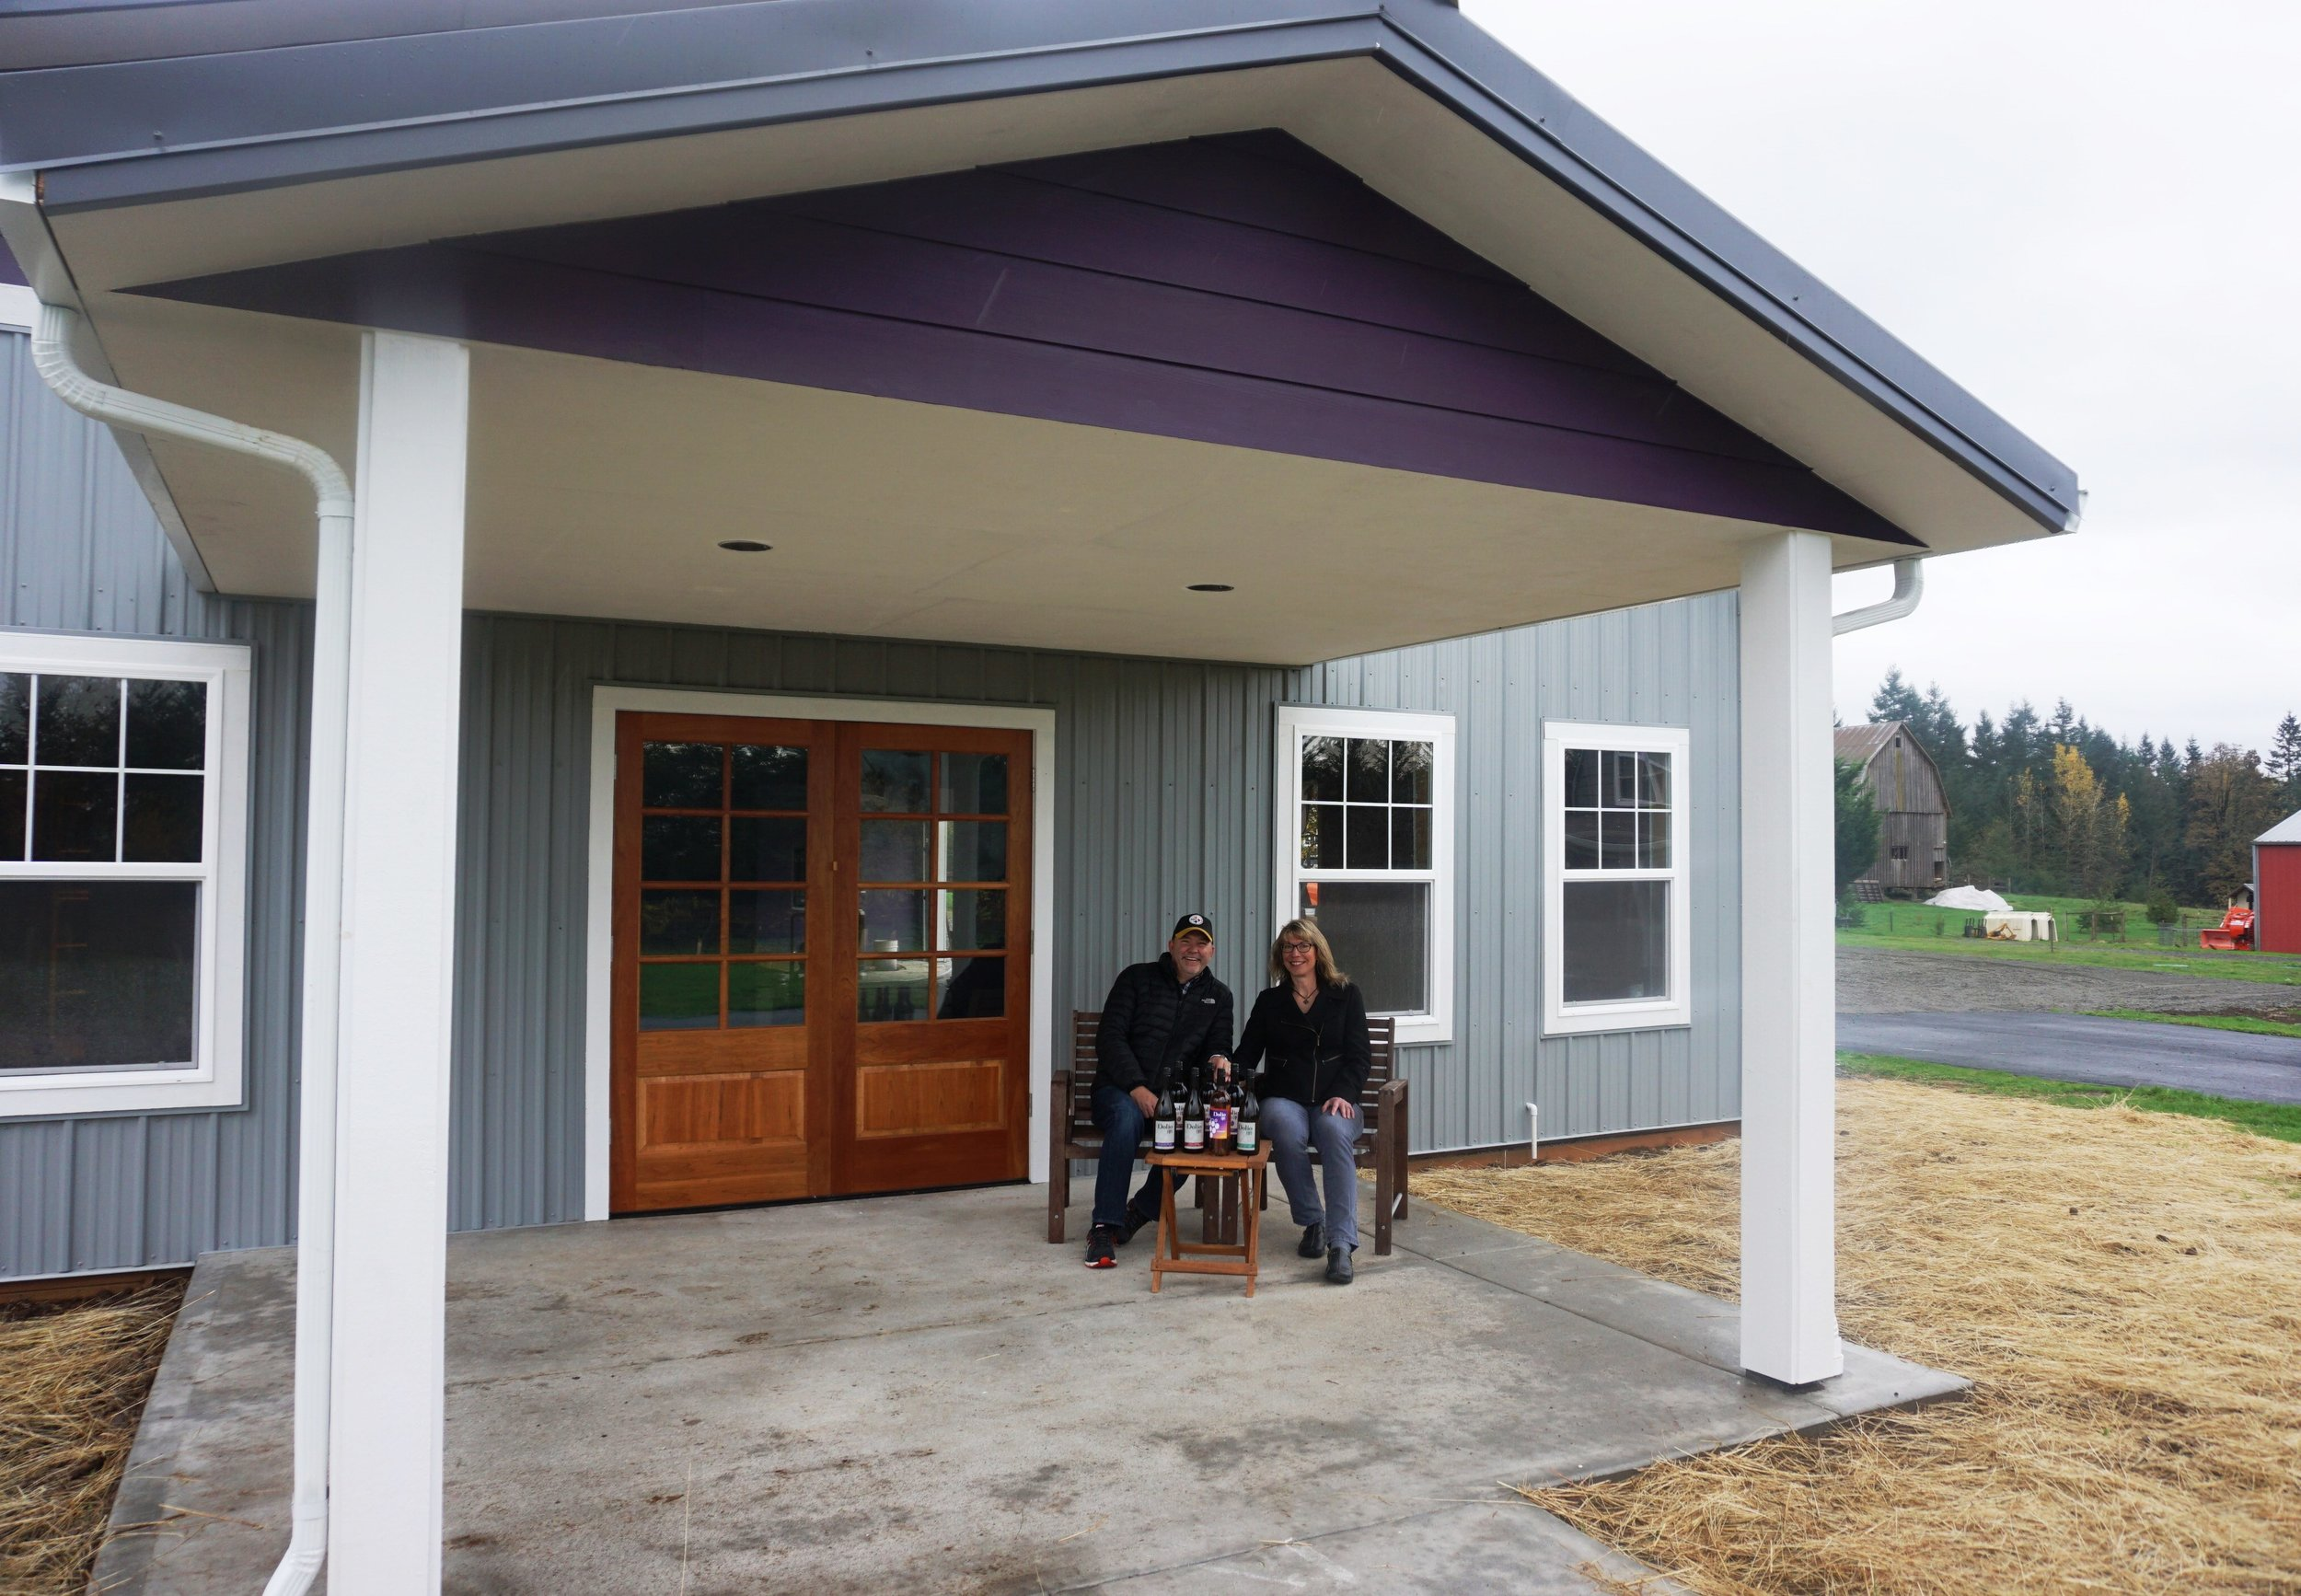 Although still a work in progress, visitors will be able to enjoy the warmth of Dolio Winery's climate-controlled tasting room during the Southwest Washington Wine Country Thanksgiving Weekend tour. Owners Don and Pam Klase pictured here. Viki Eierdam